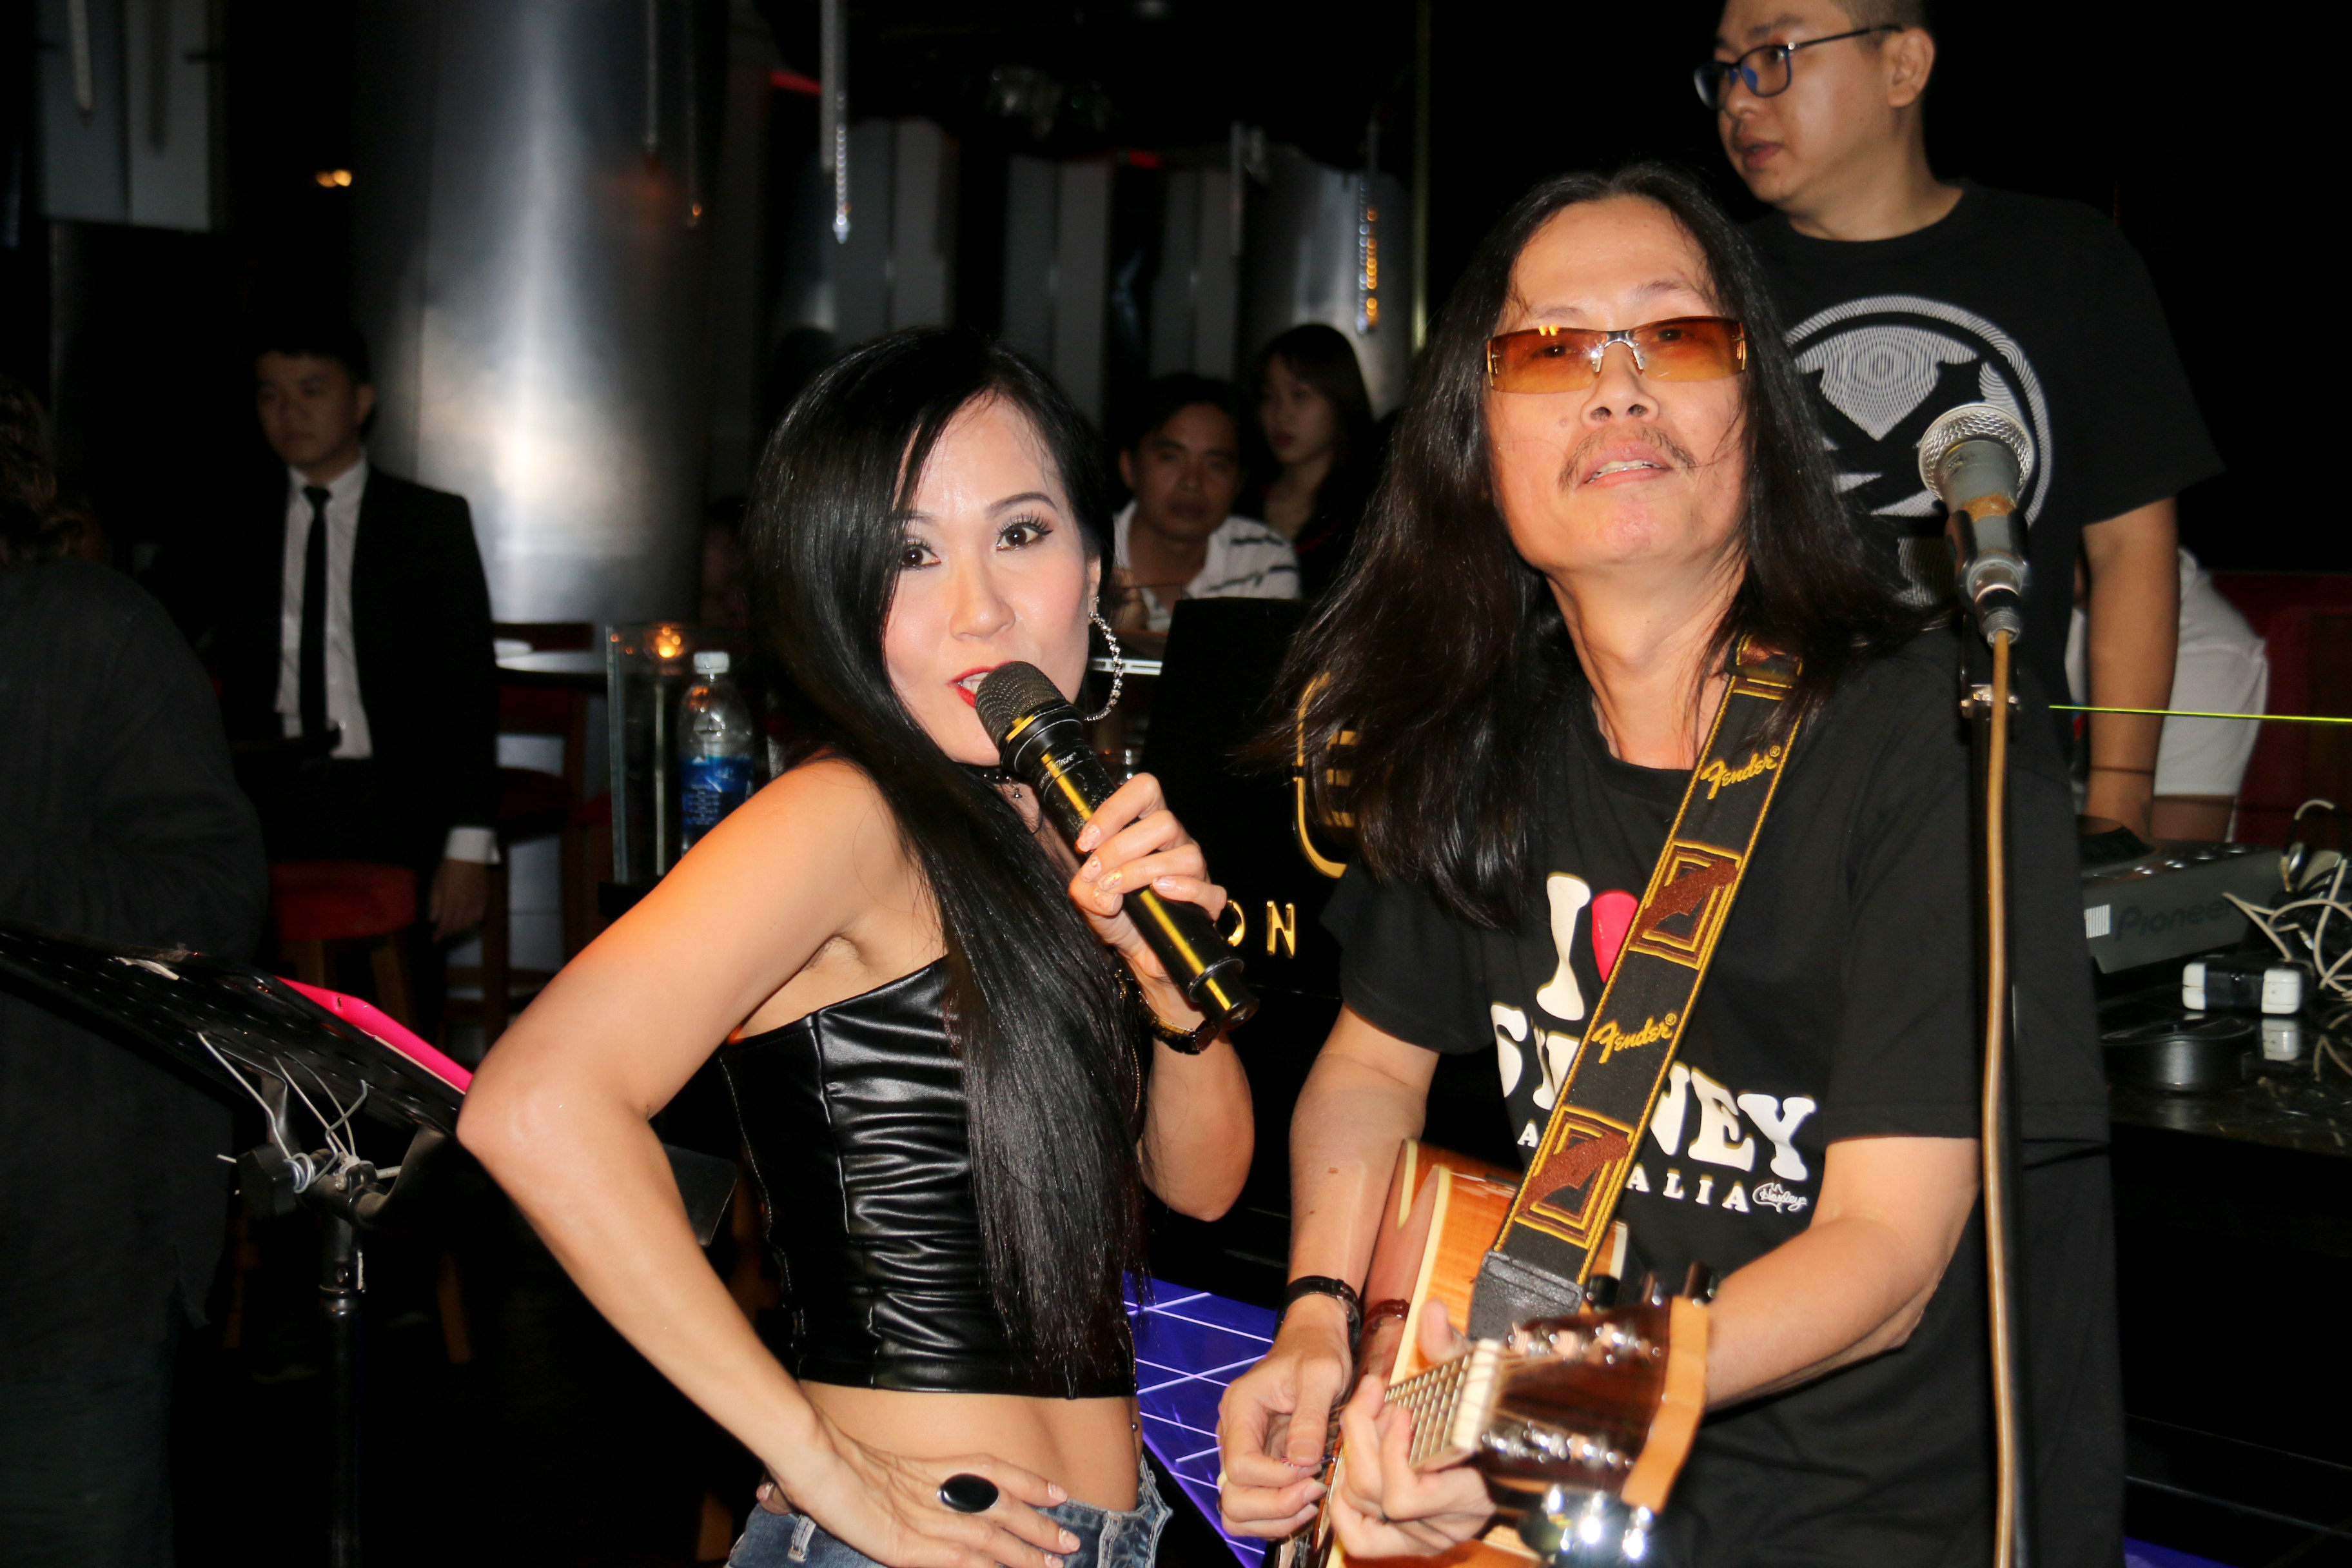 Filipino singers in Vietnam – P1: The beauties on stage